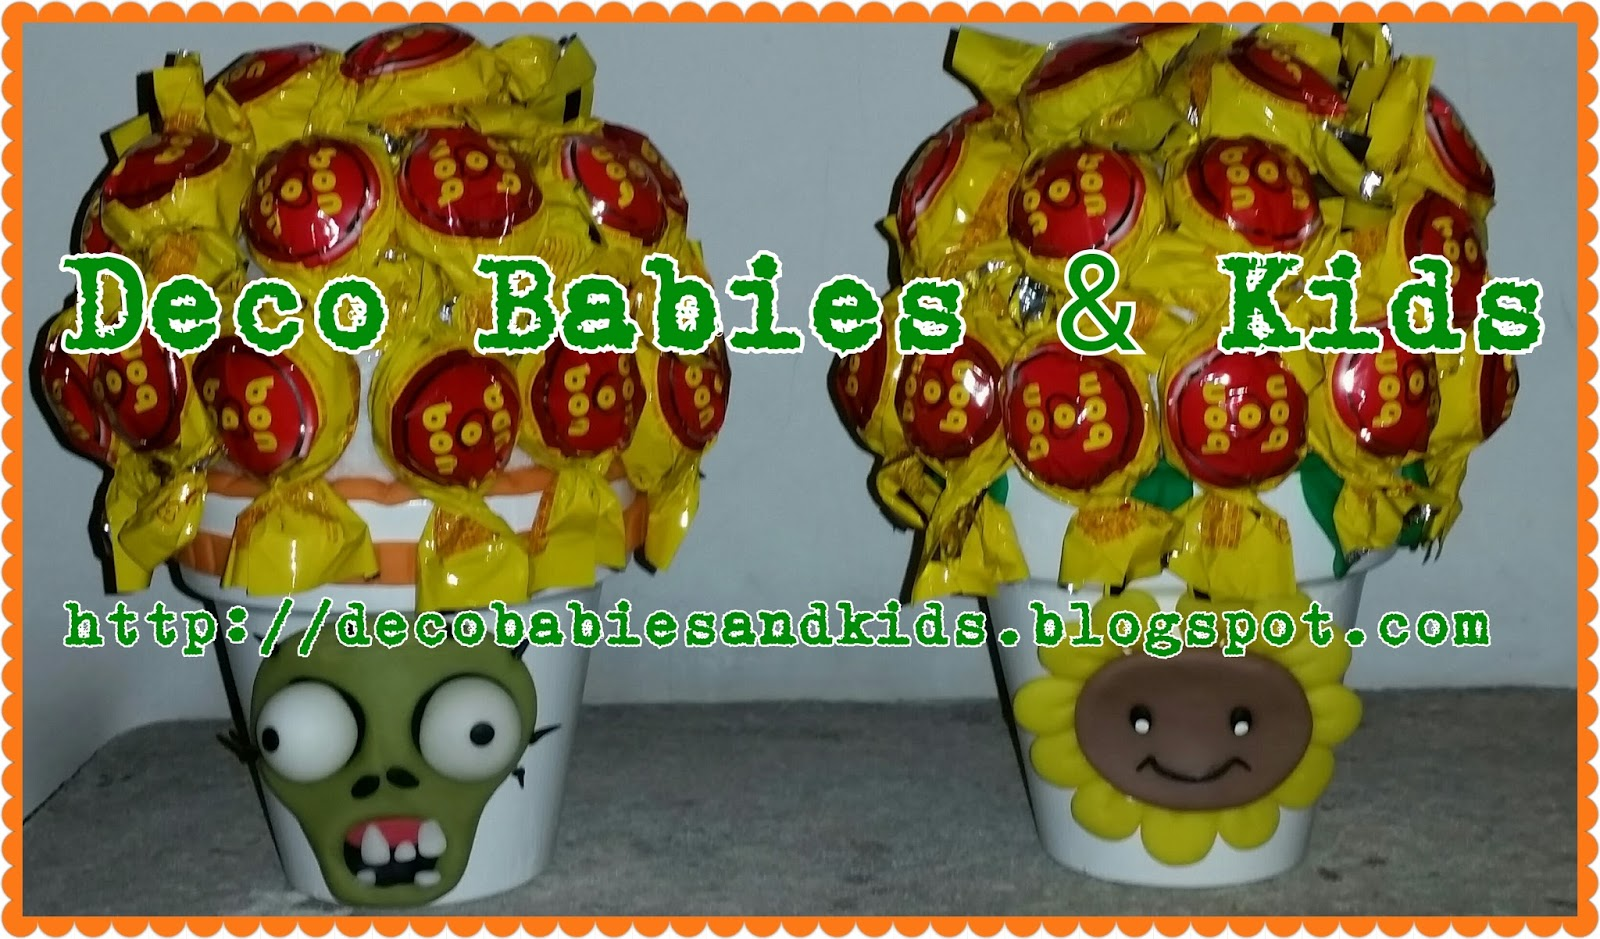 Deco babies kids honguitos dulces plantas vs zombies for Decoracion con globos plantas contra zombies